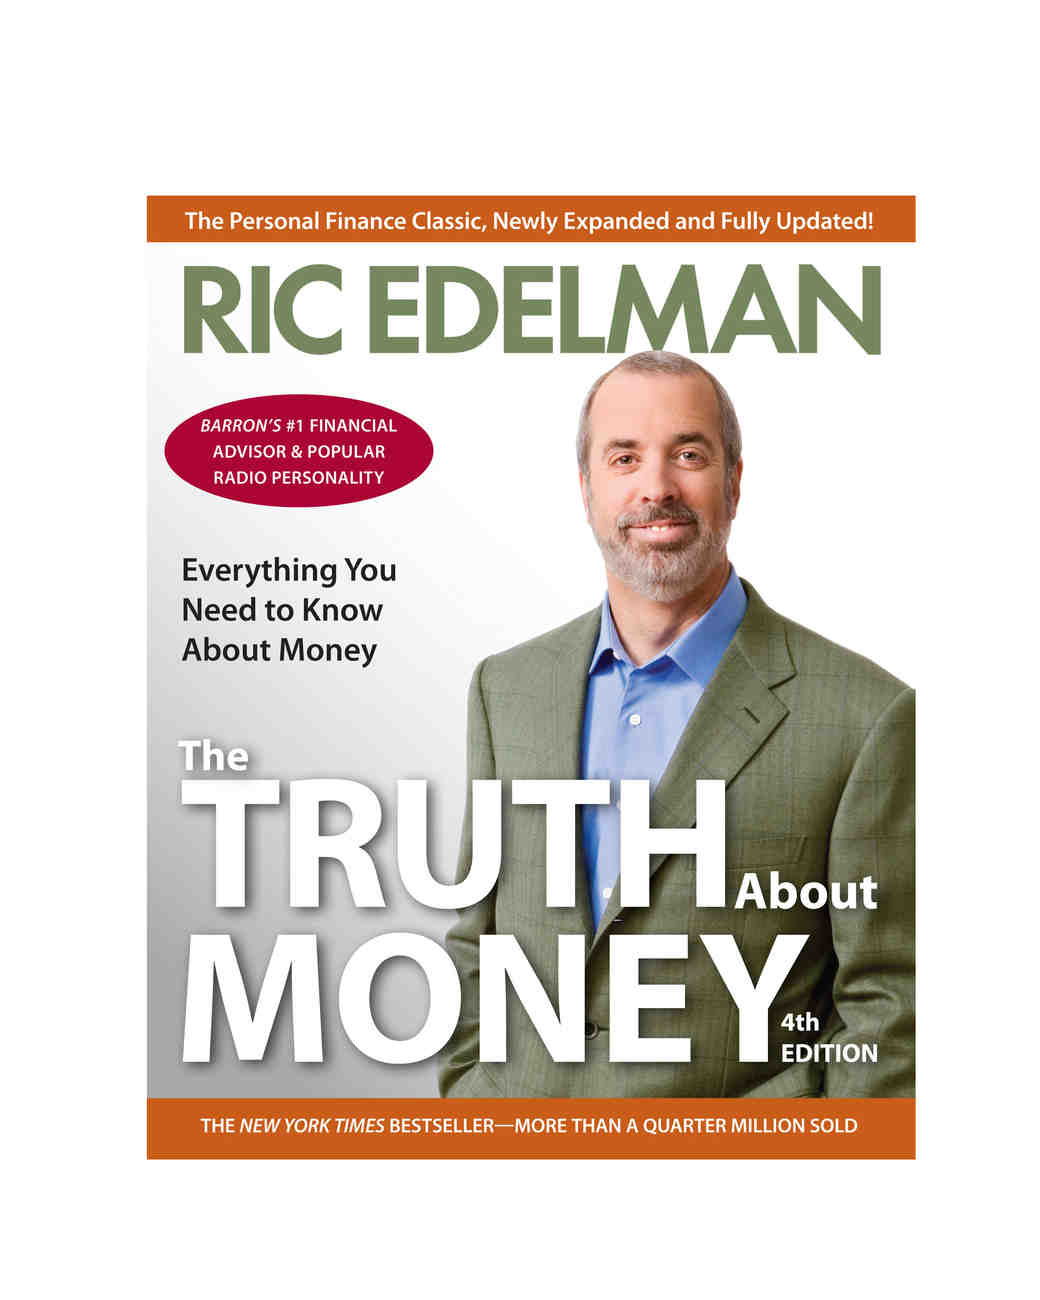 books-for-newlywed-ric-edelman-the-truth-about-money-0415.jpg